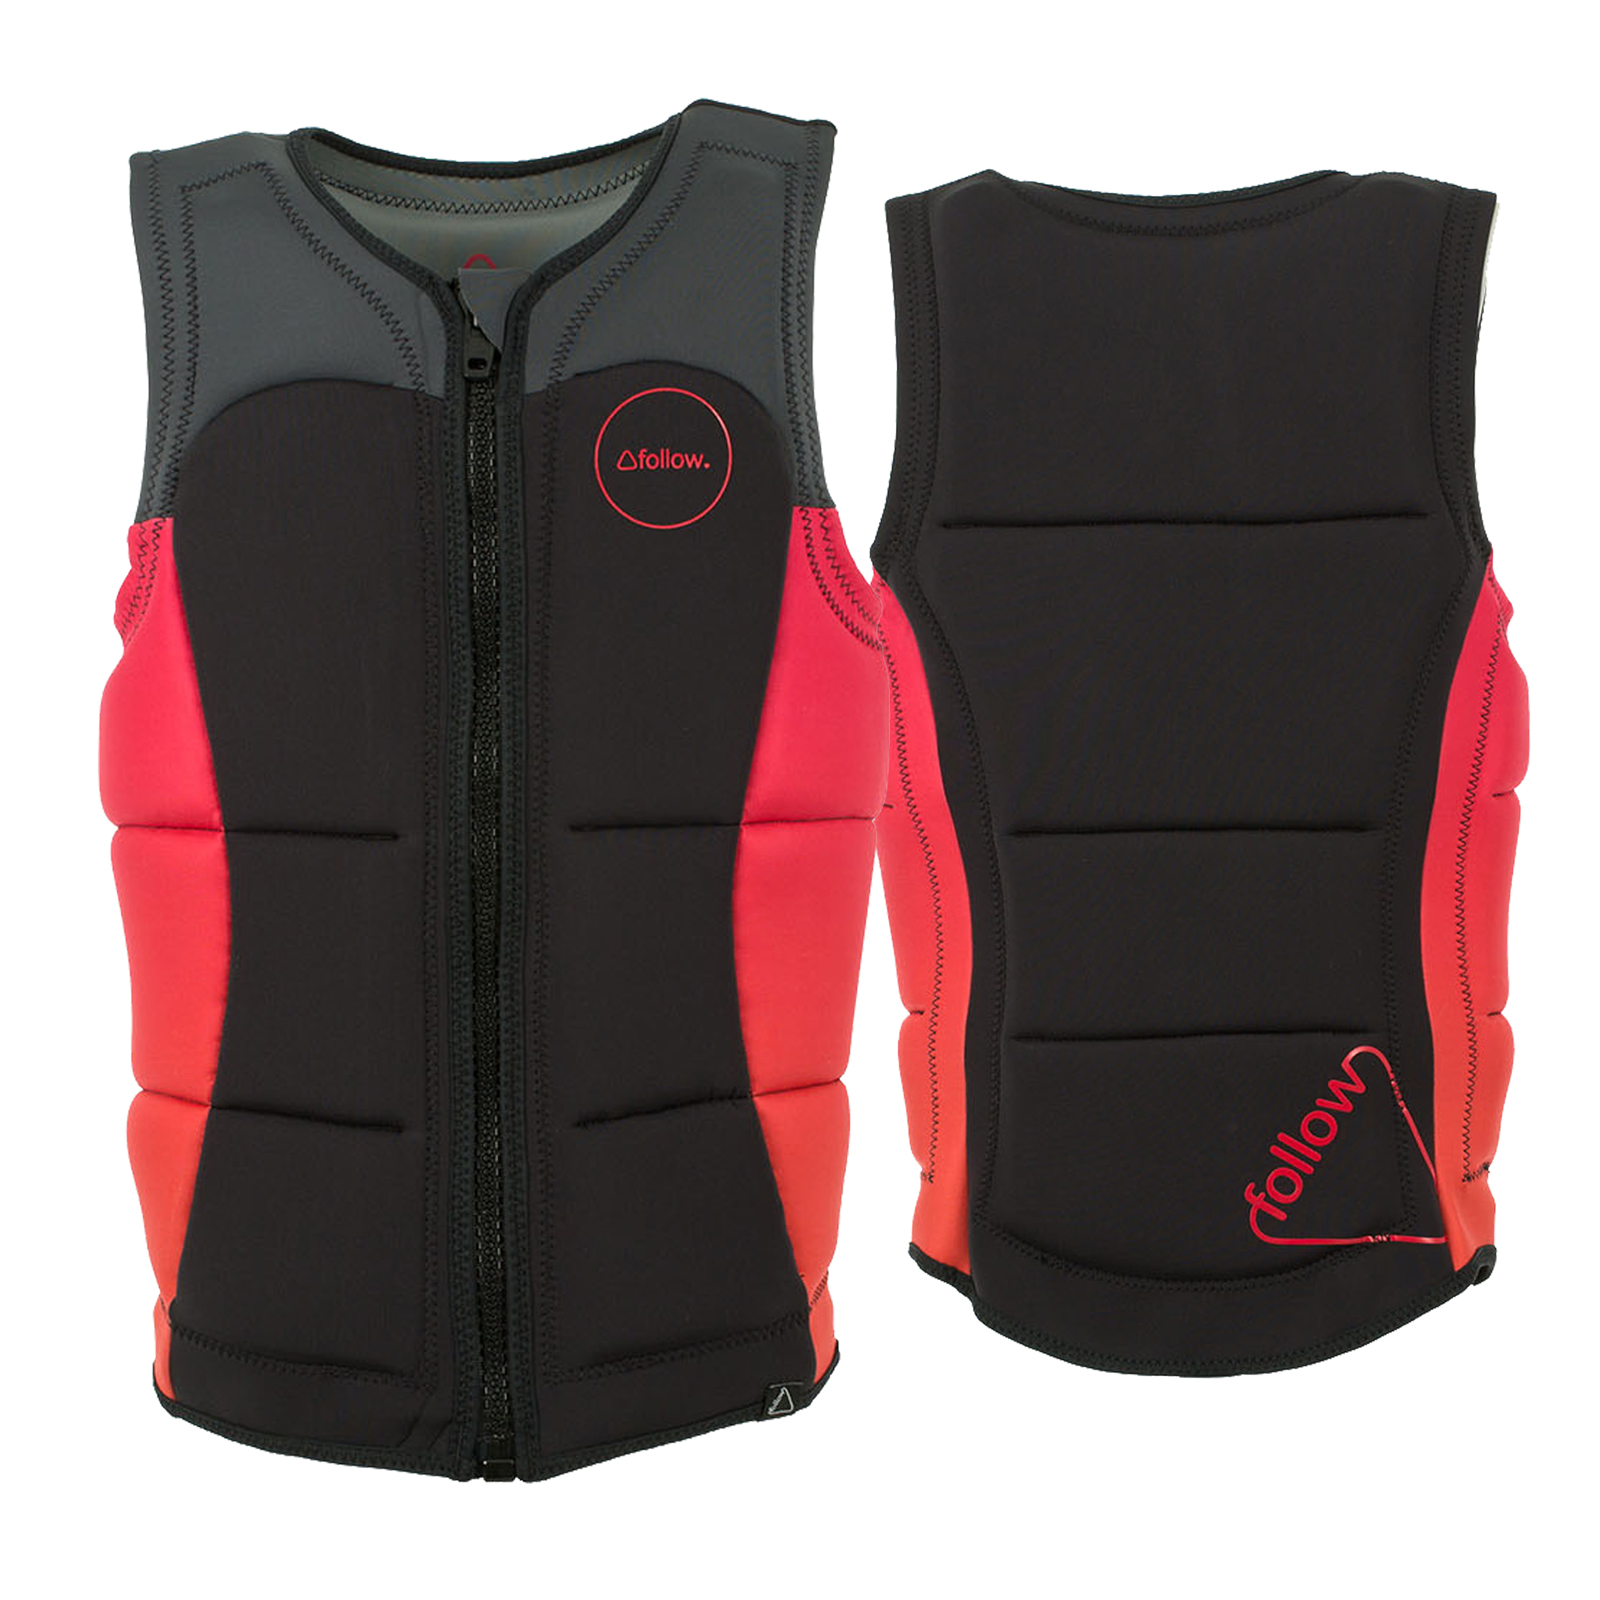 ATLANTIS PRO IMPACT VEST - SALMON/CHARCOAL FOLLOW 2017